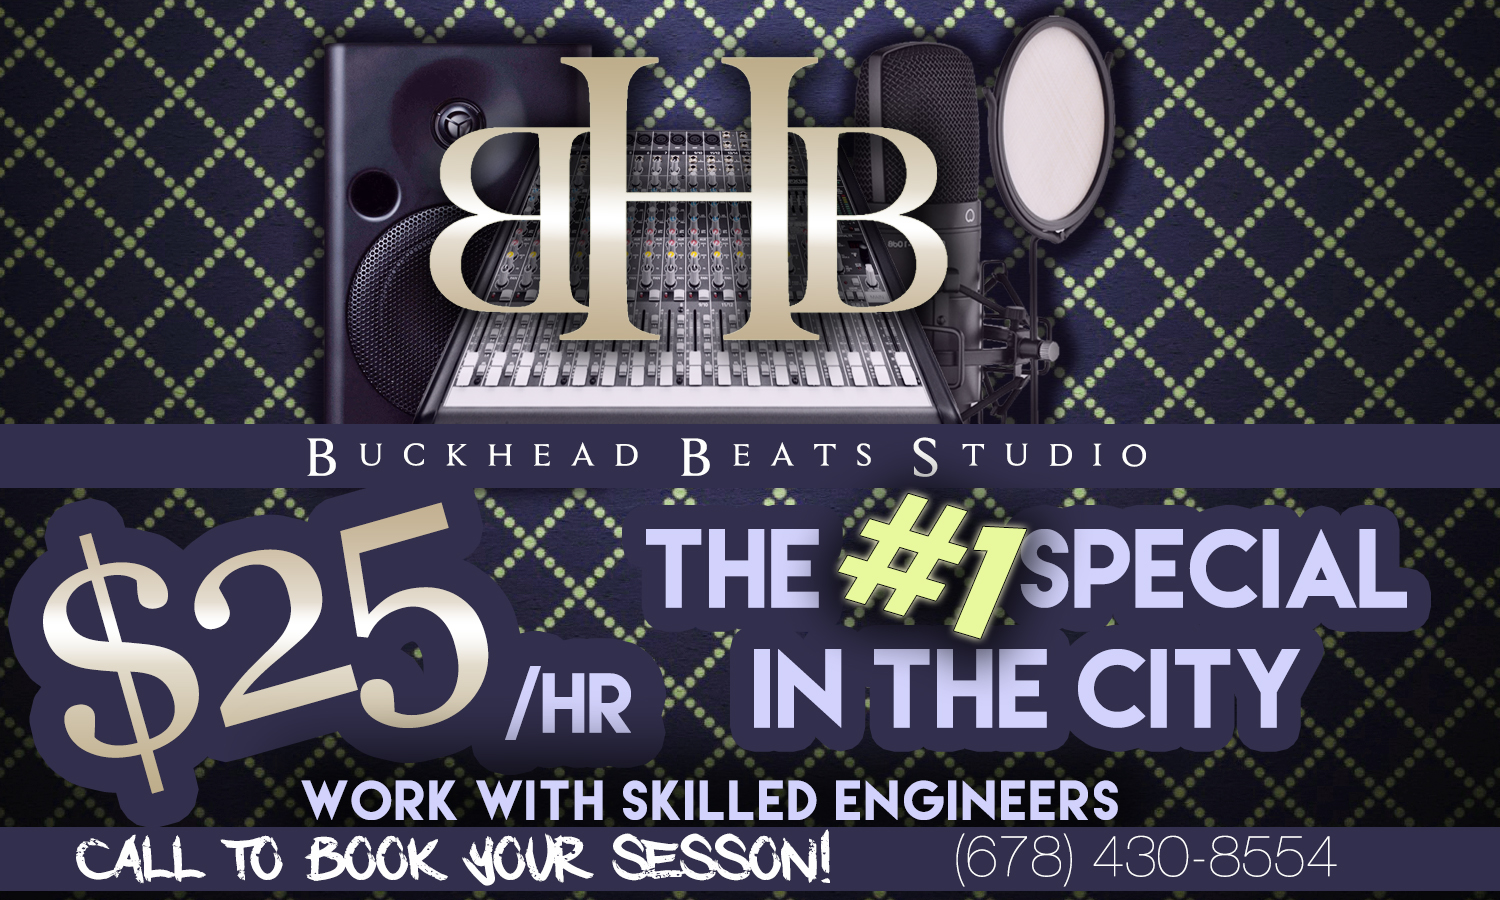 BuckHeadBeats Flyer.jpg